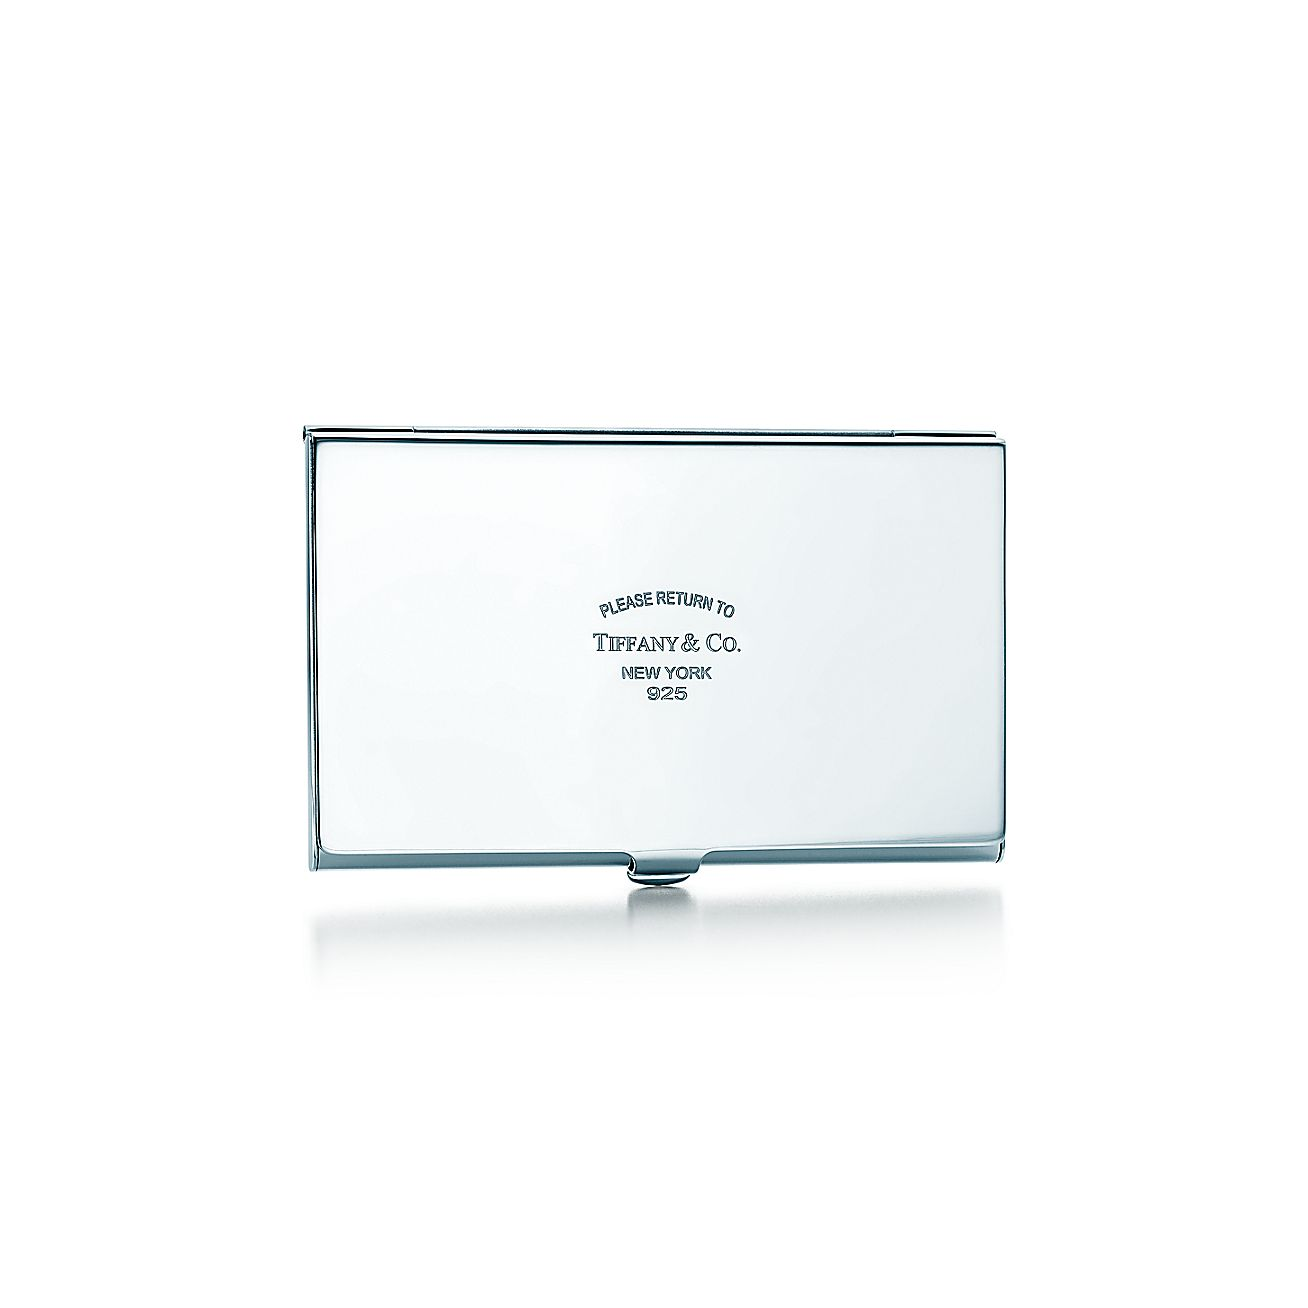 Return to tiffanyr business card case in sterling silver for Tiffany and co business card holder